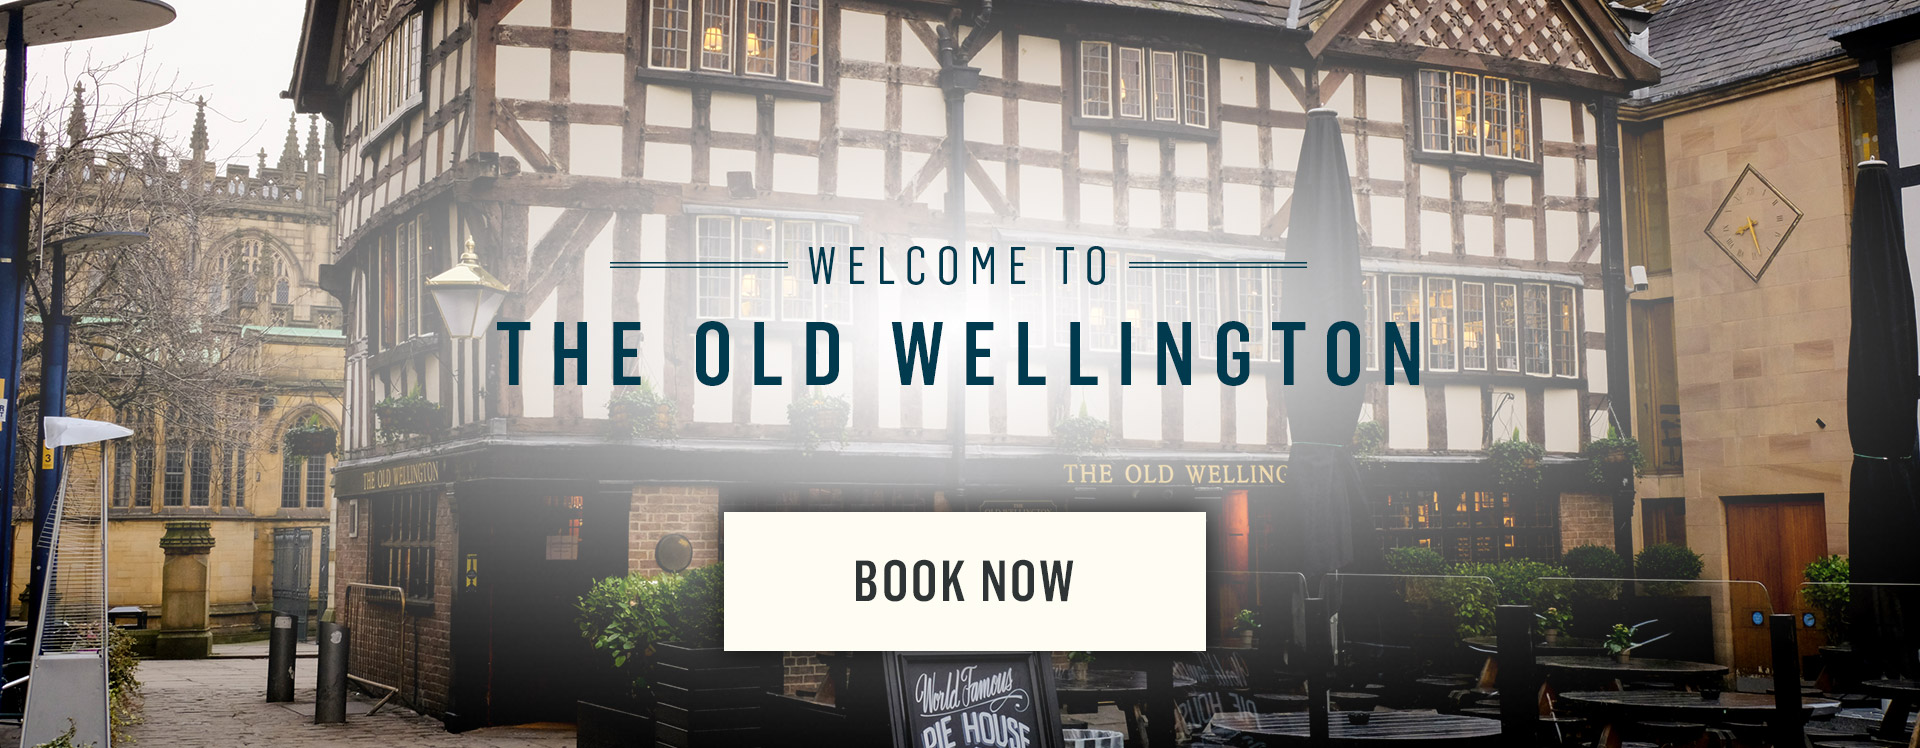 Welcome to The Old Wellington - Book Now